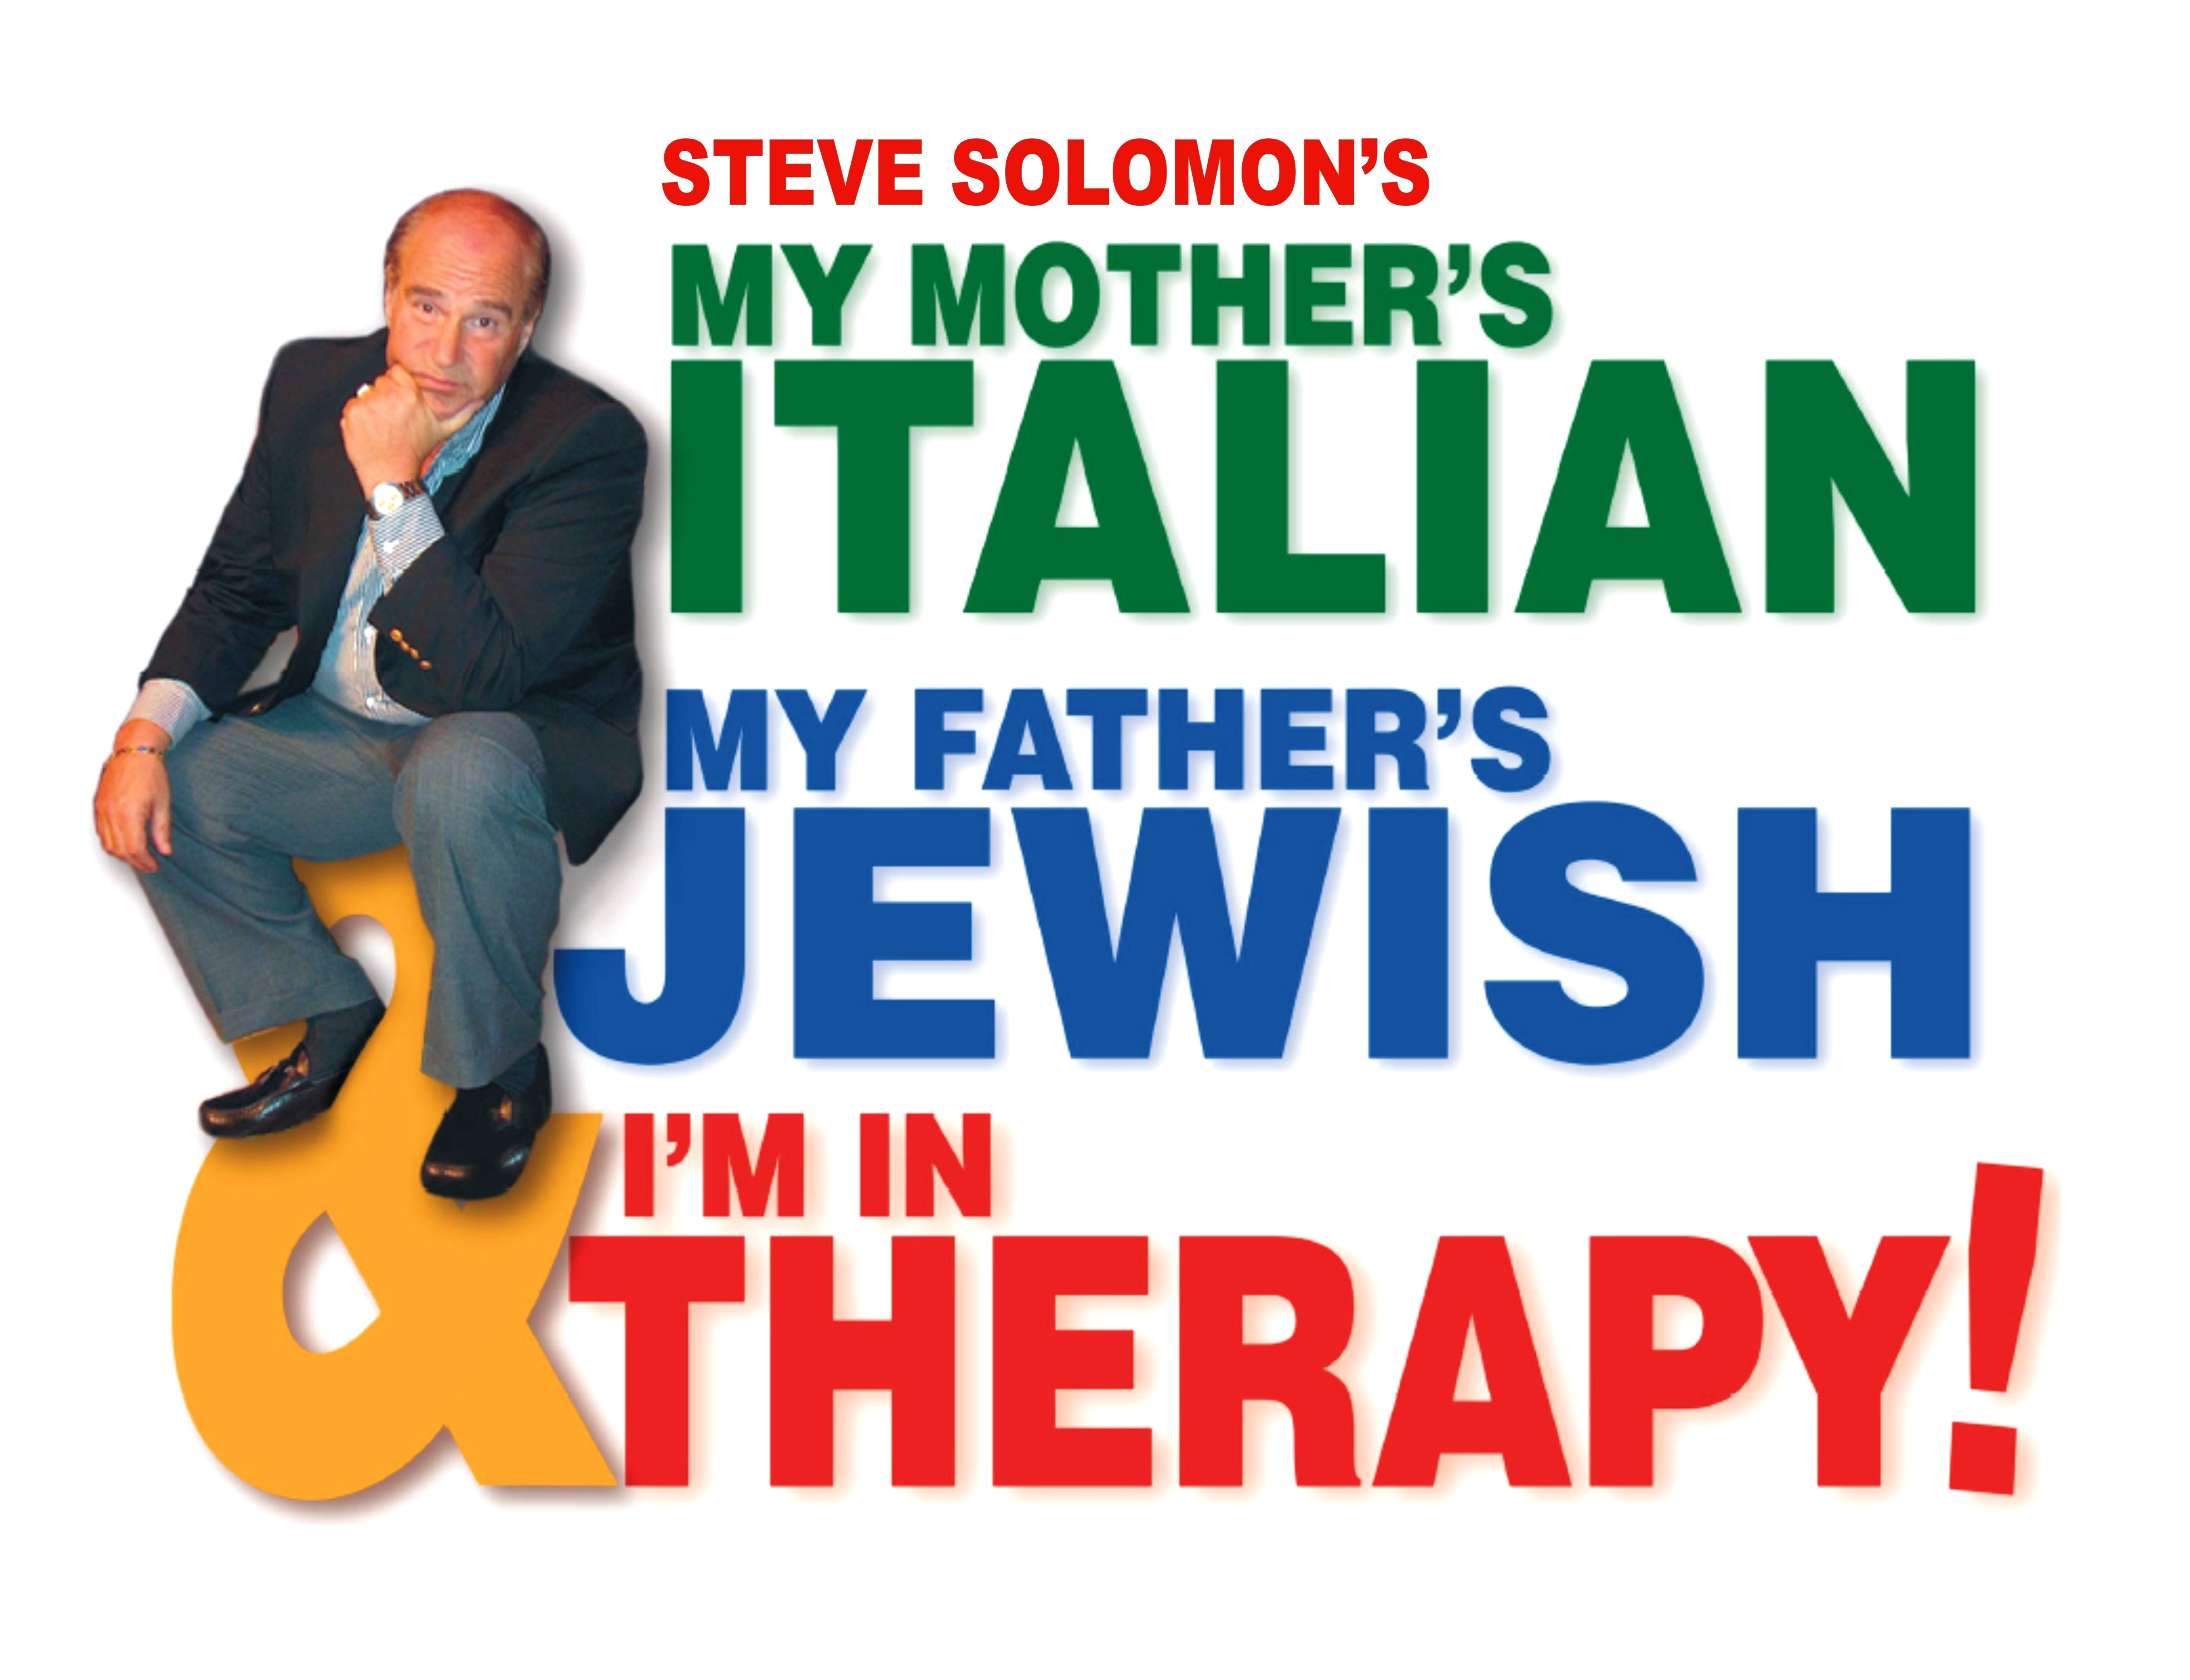 My Mother's Italian, My Father's Jewish, & I'm in Therapy!